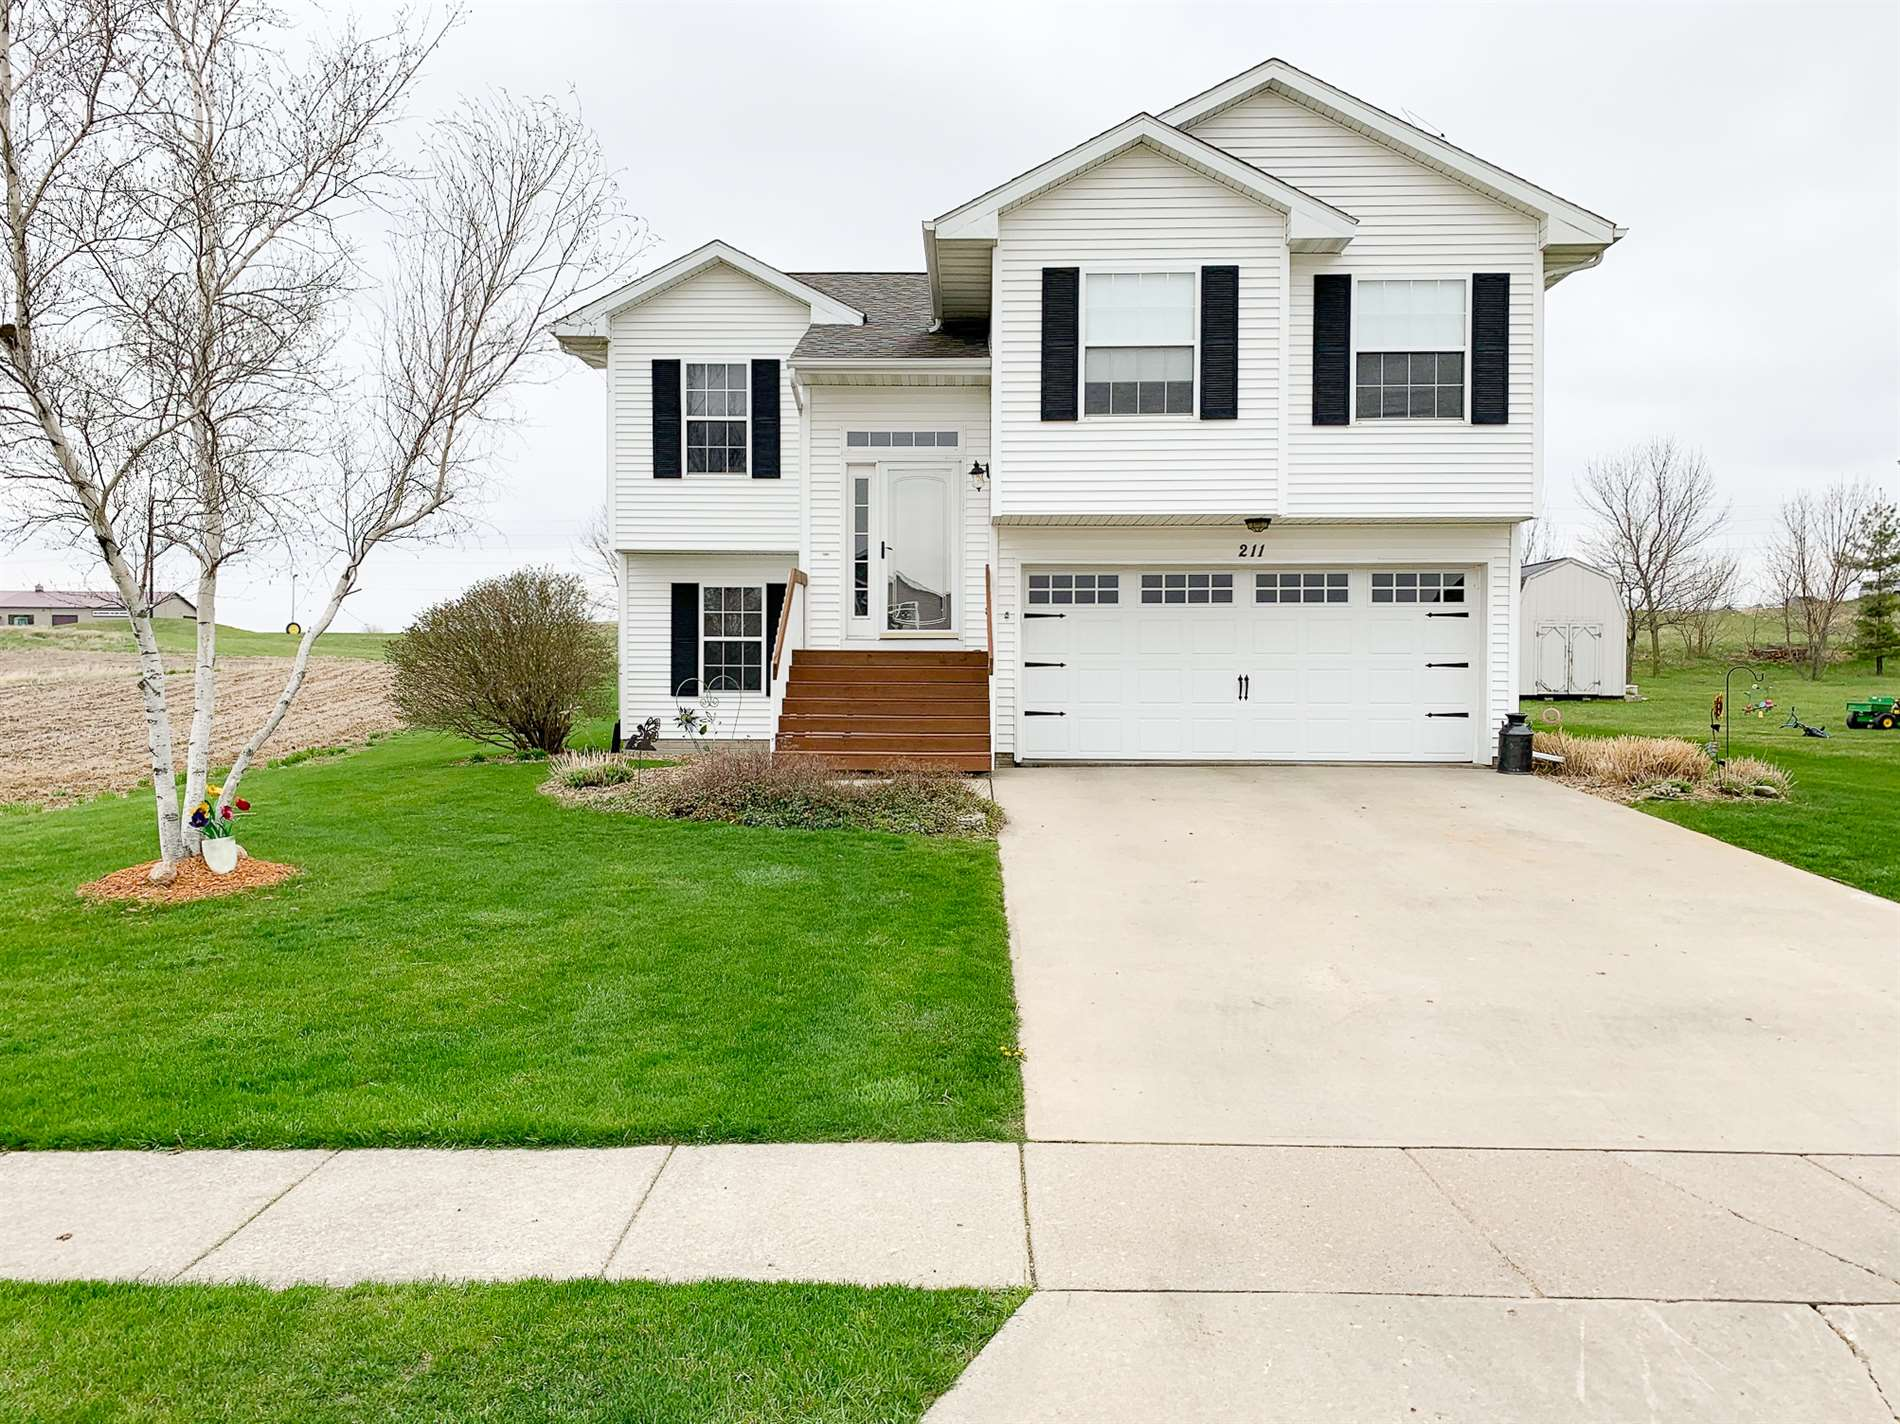 211 Rogers Dr, Williamsburg, IA 52361